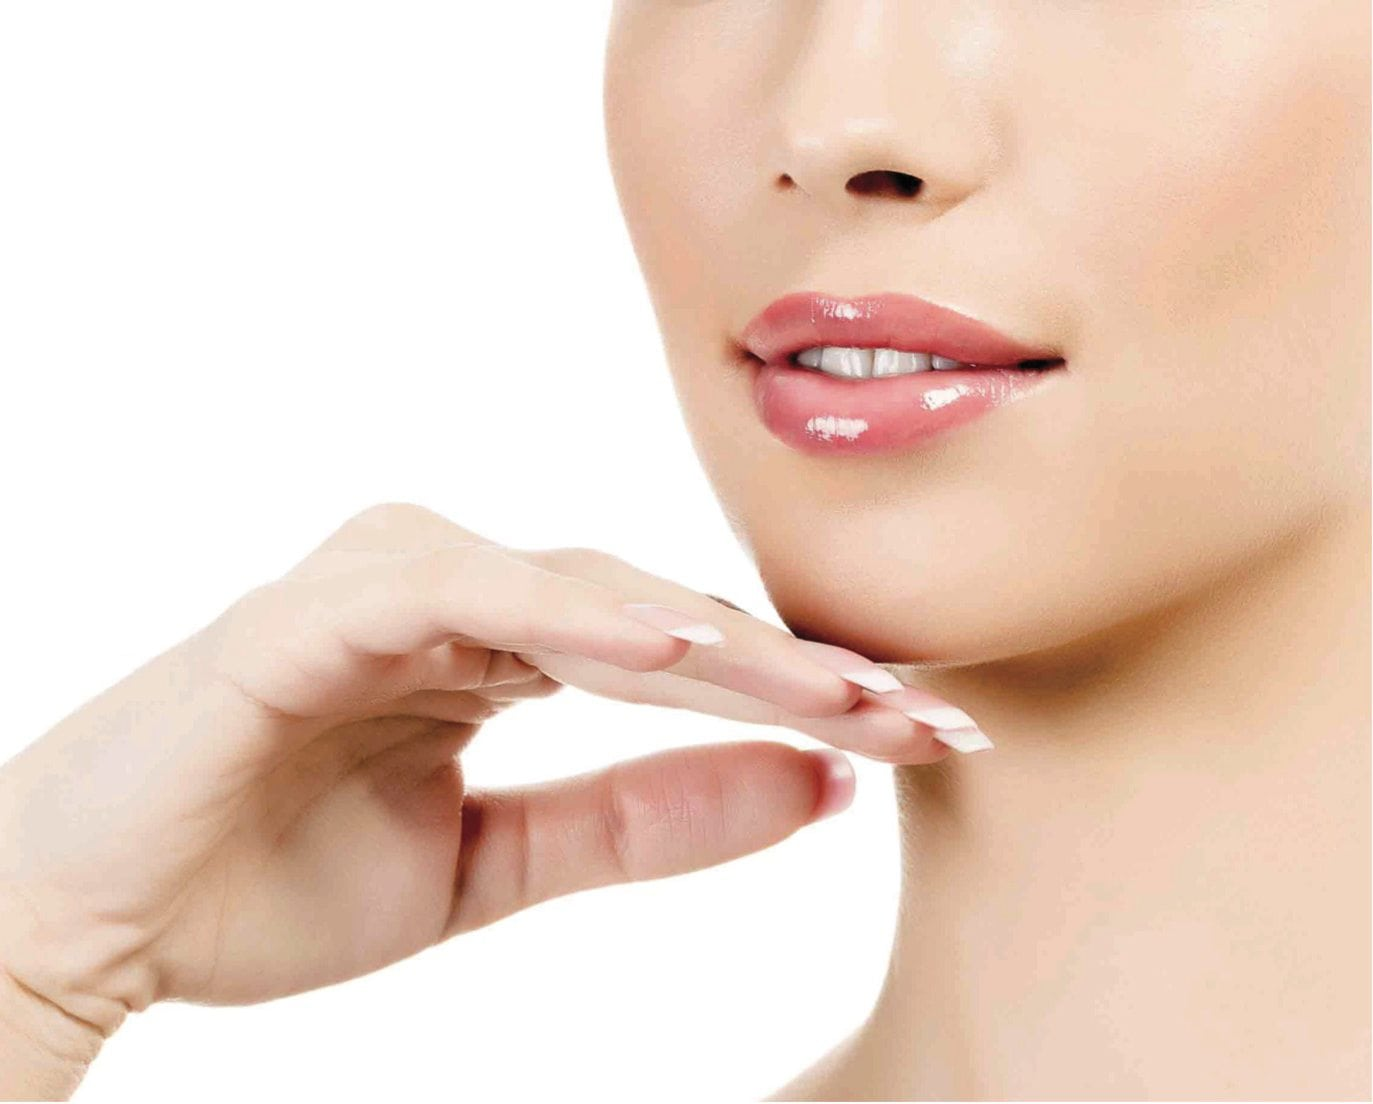 kybella for stubborn chin fat removal